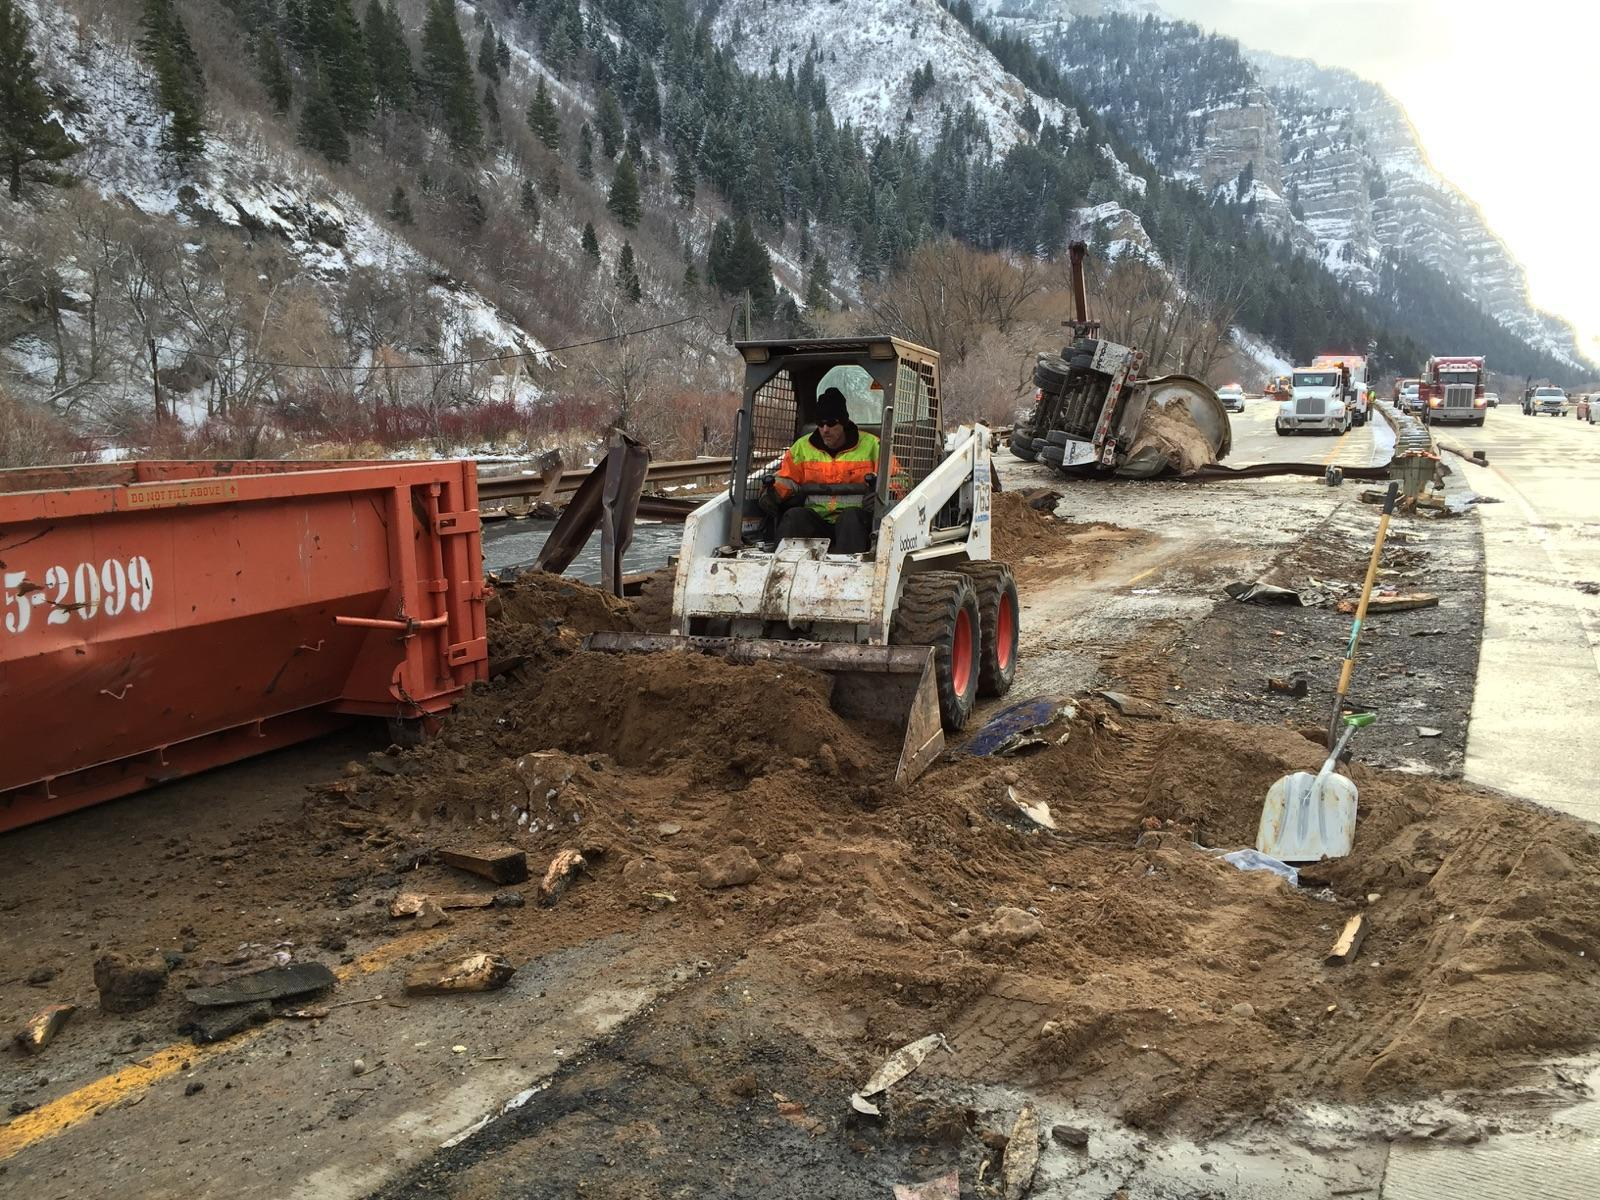 Cleanup efforts for the crude oil spill on Highway 189 in Provo Canyon.